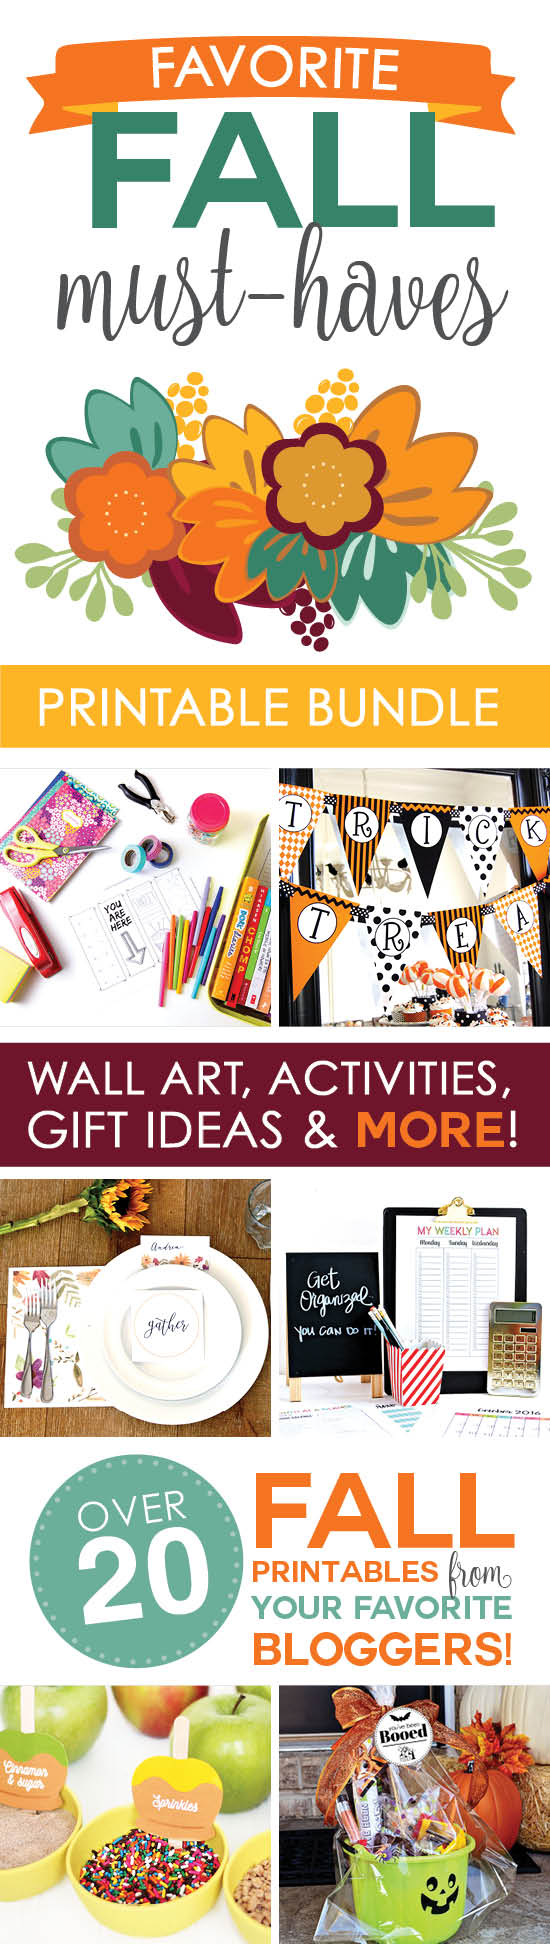 Only available for 3 days! You will want this printable bundle!